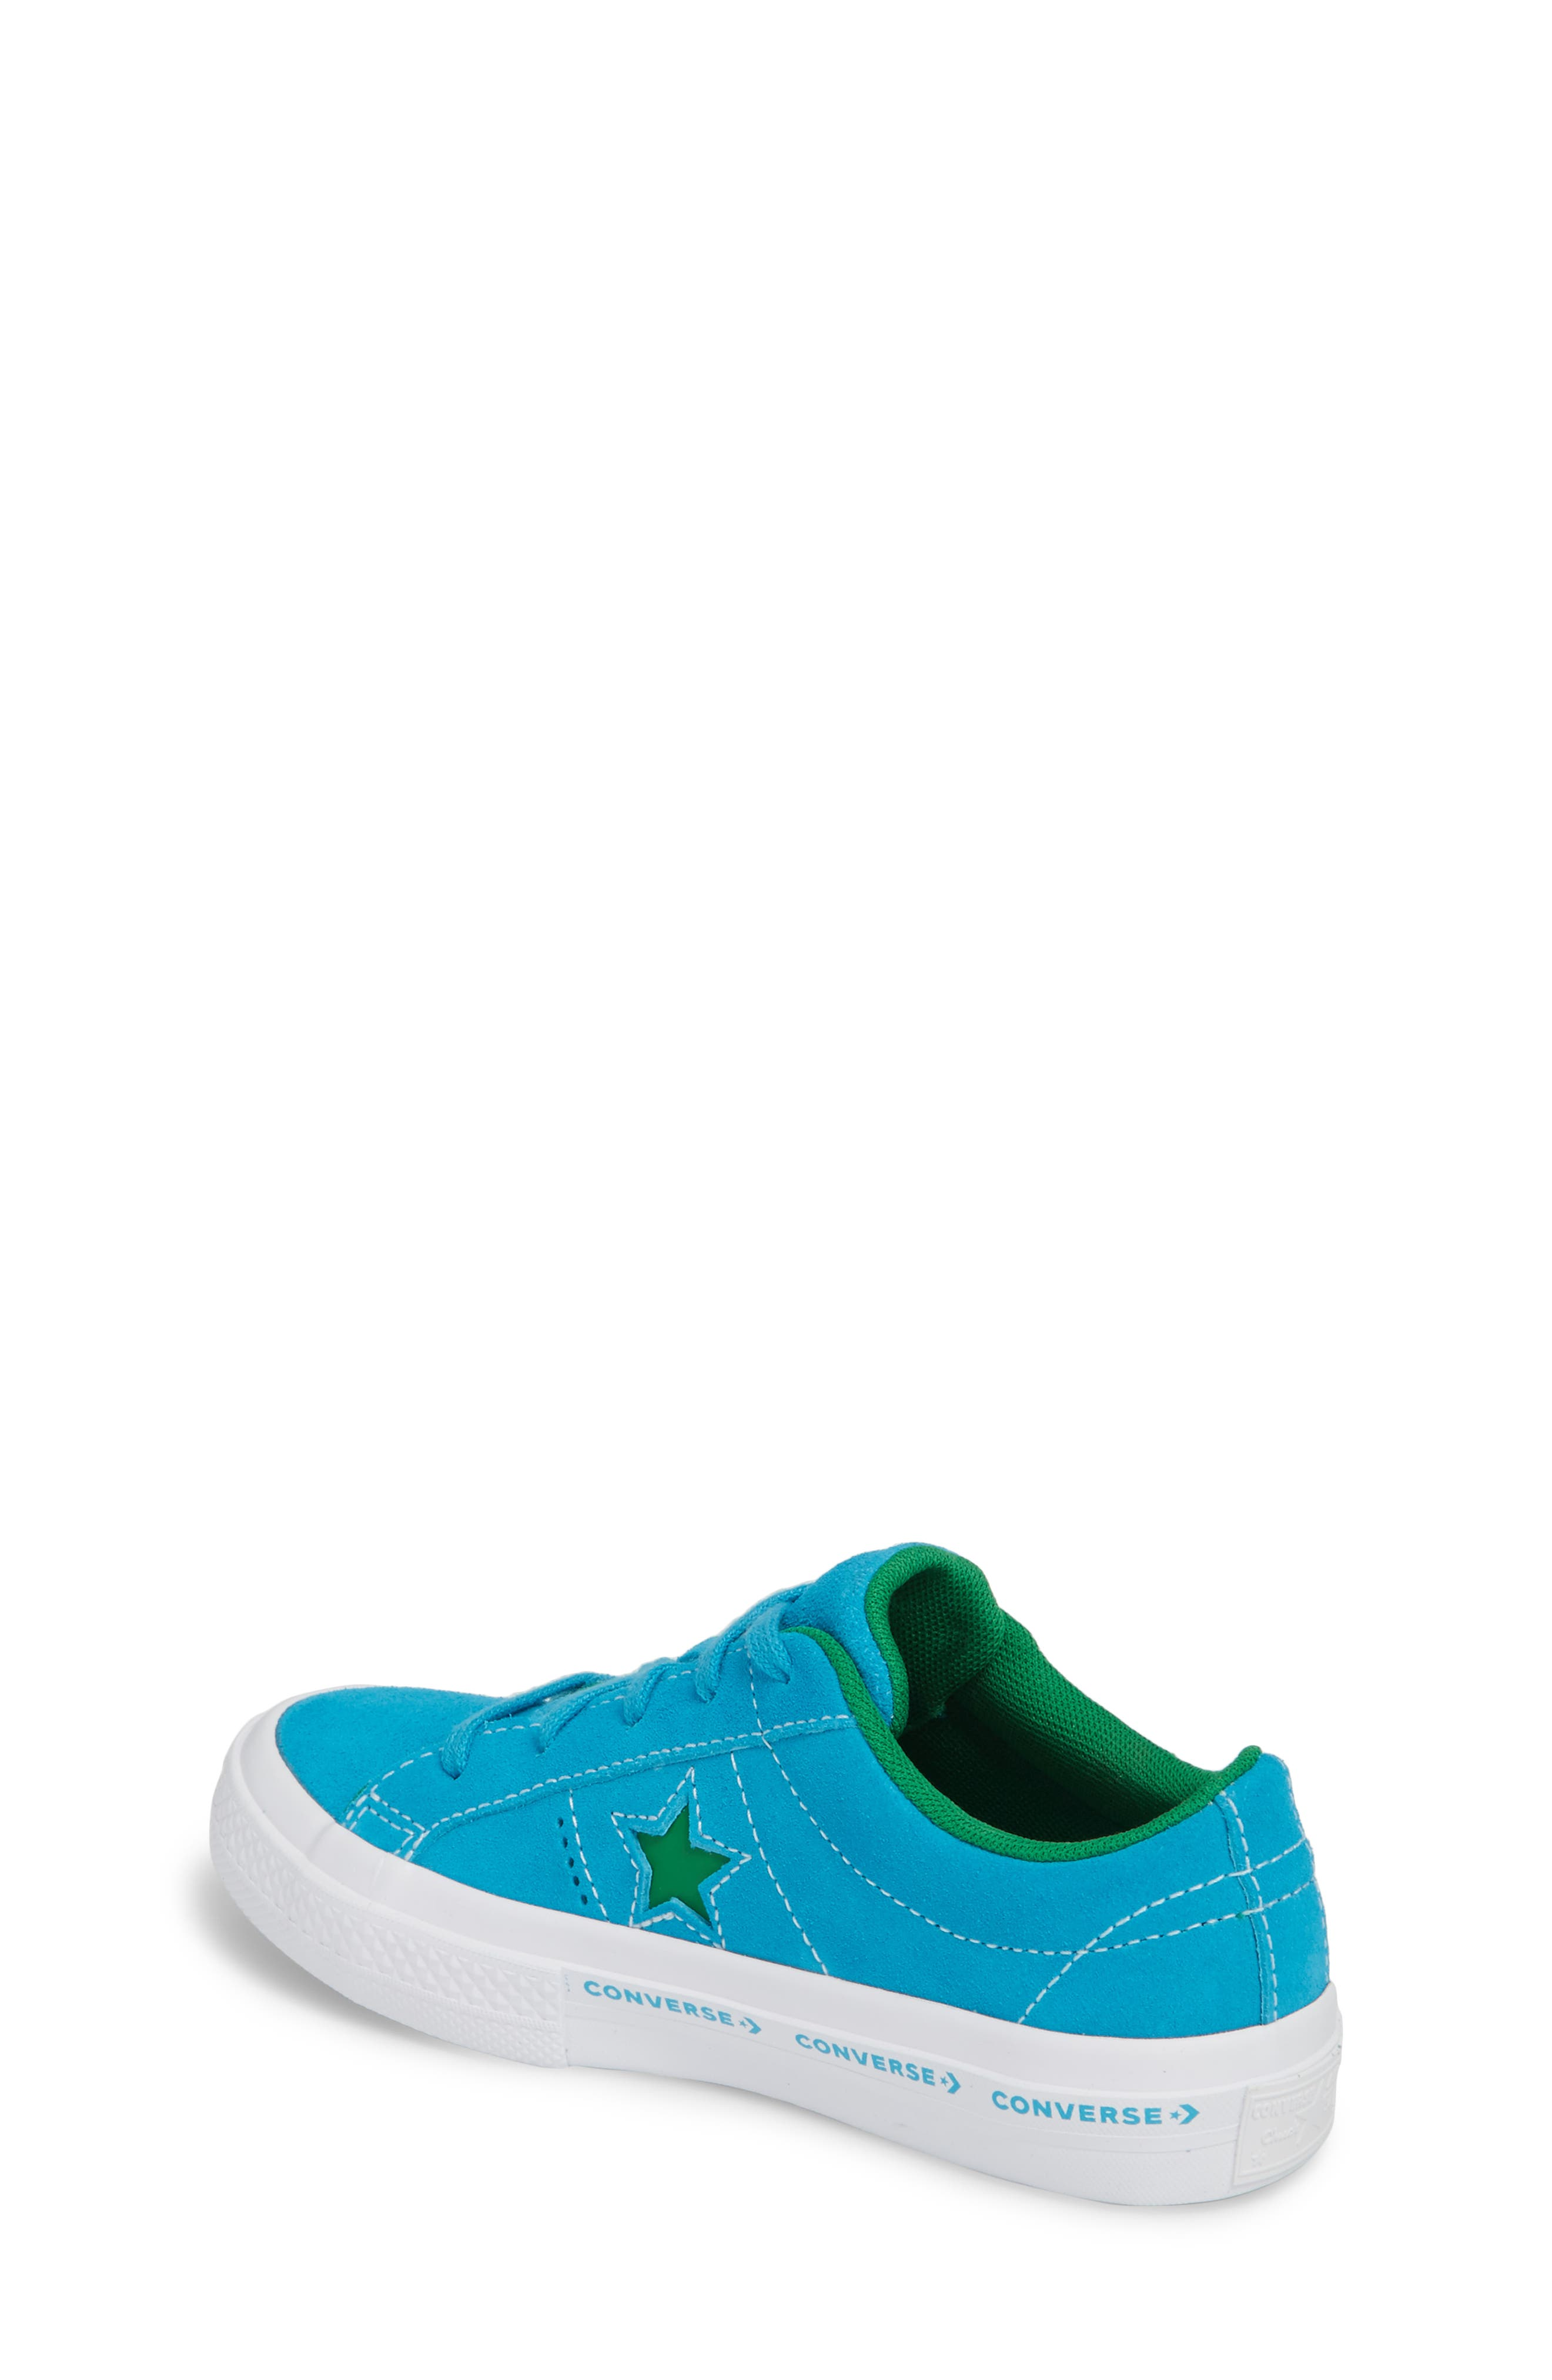 Chuck Taylor<sup>®</sup> All Star<sup>®</sup> One Star Leather Platform Sneaker,                             Alternate thumbnail 2, color,                             Hawaiian Ocean